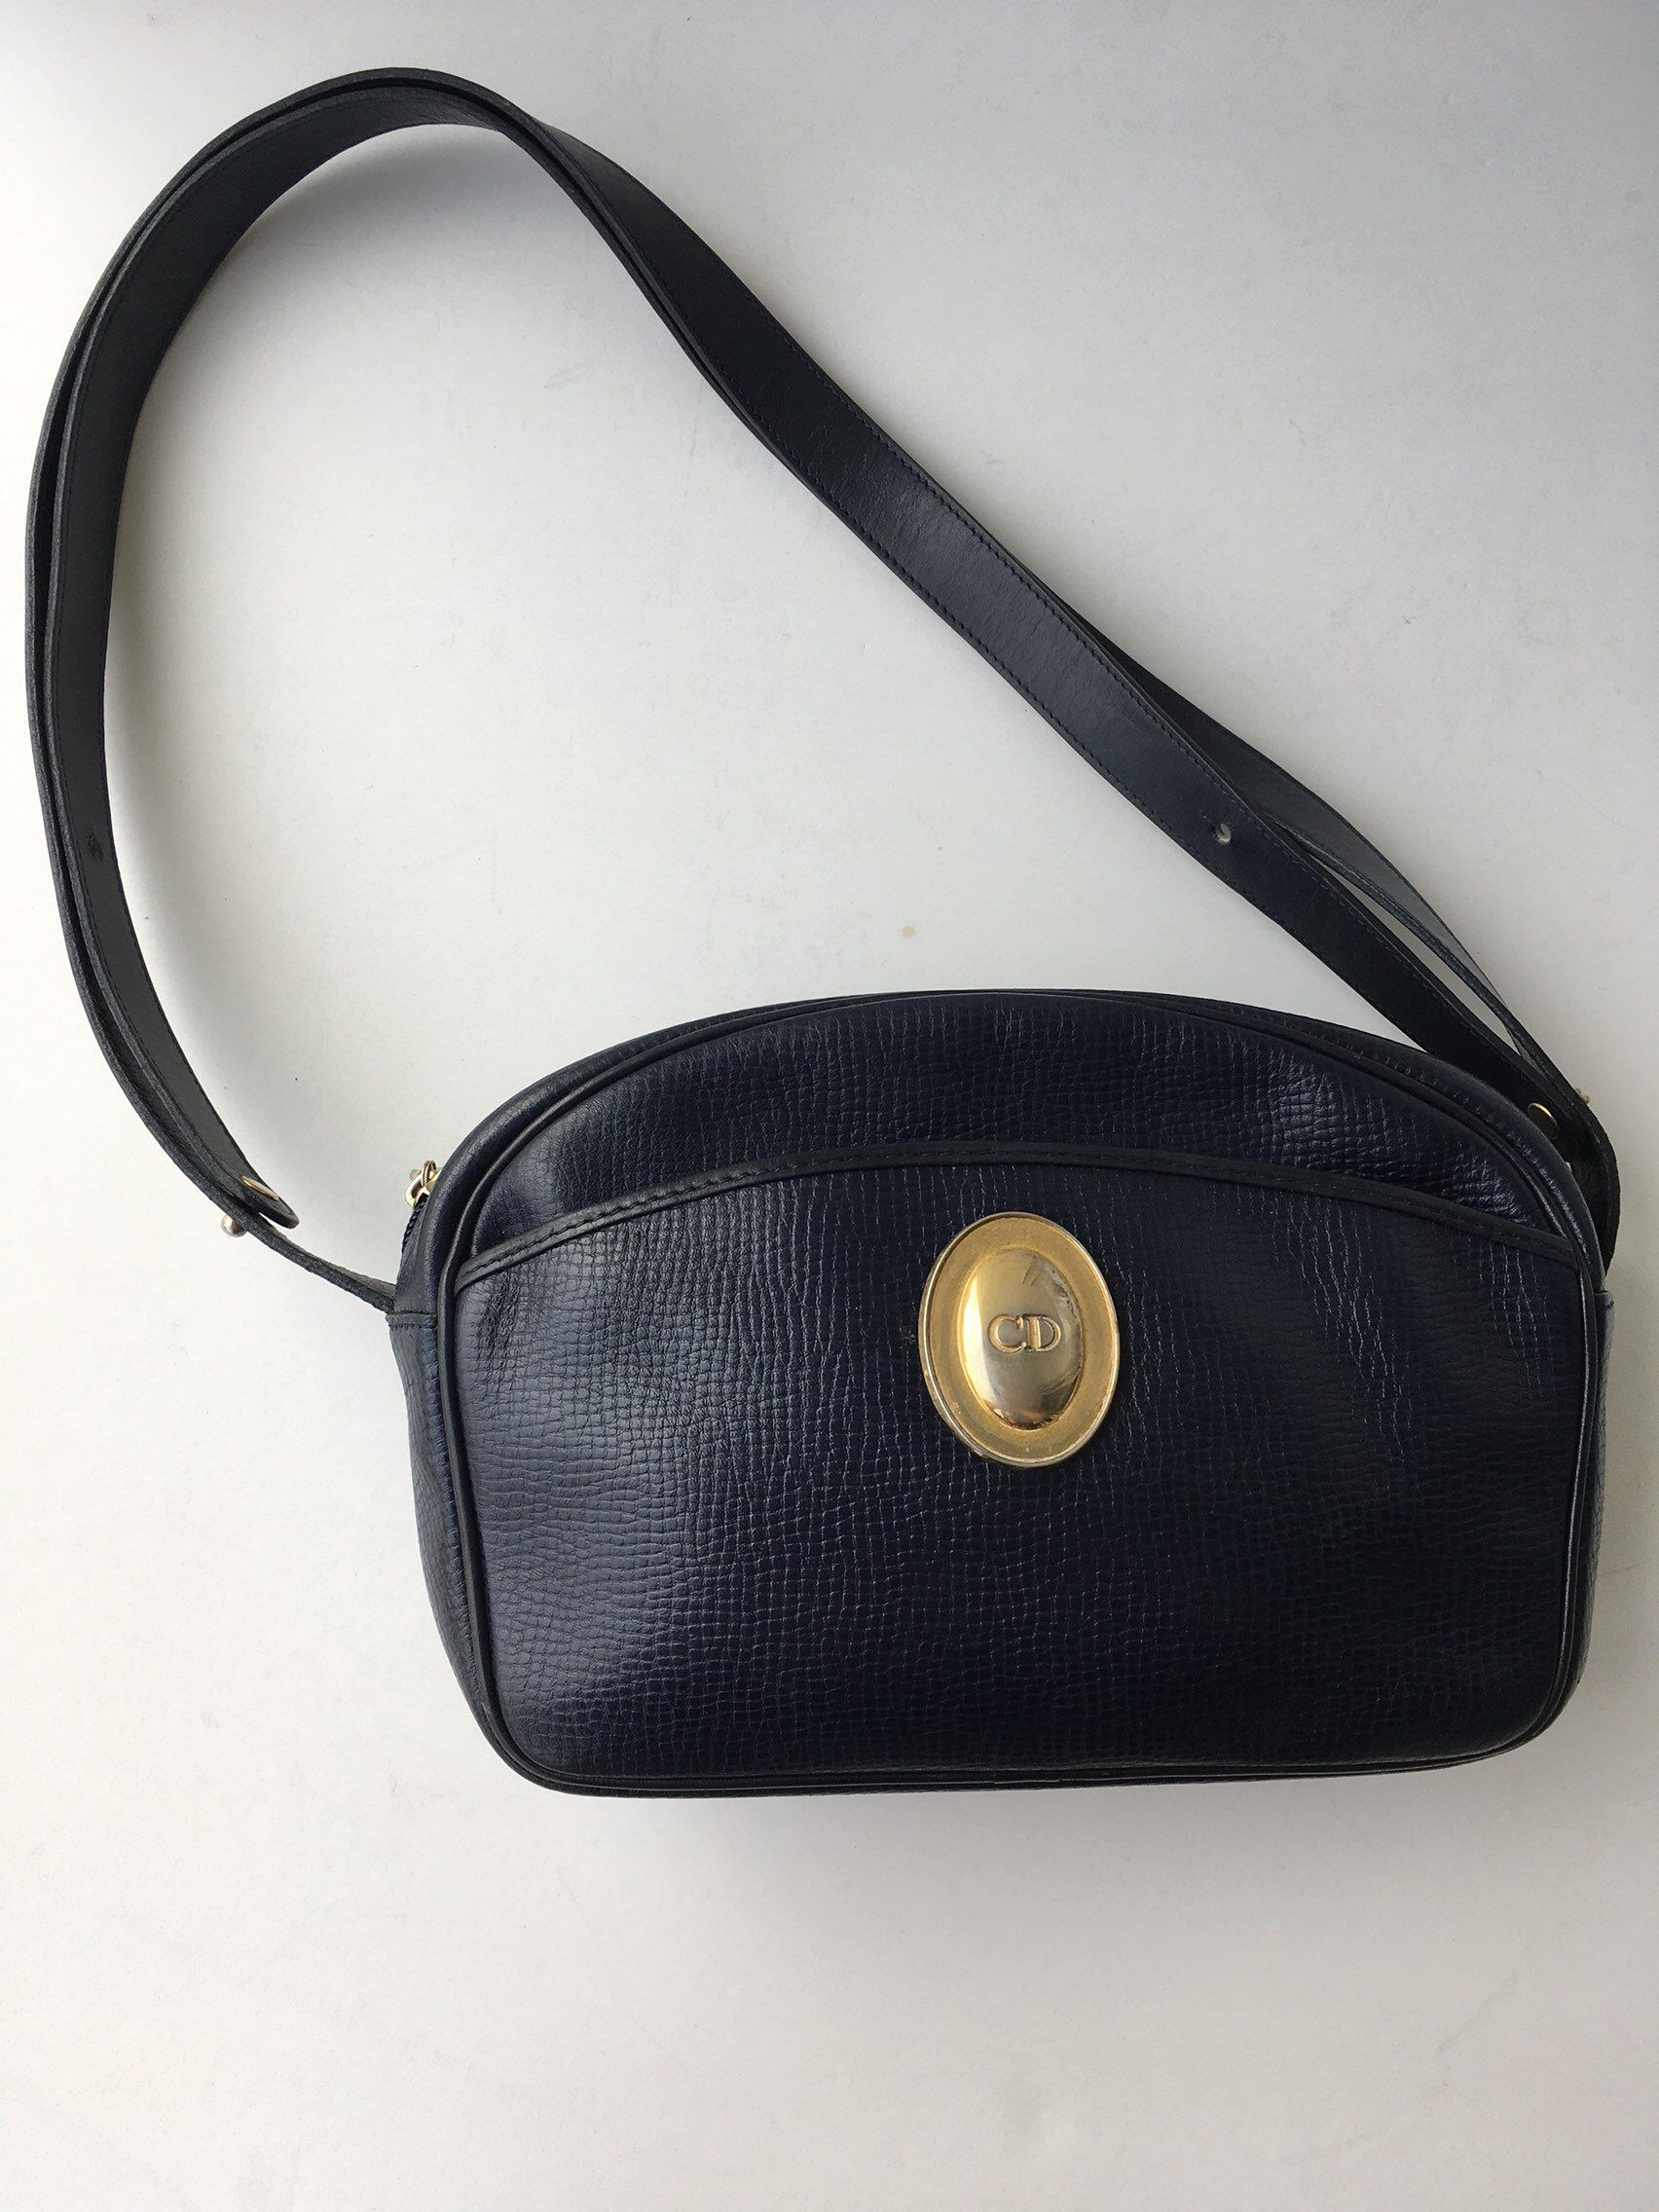 Excited to share this item from my  etsy shop  Authentic Christian Dior  Shoulder Bag Vintage Ghw Good Blue Leather Cross Body Bag d48cb46403